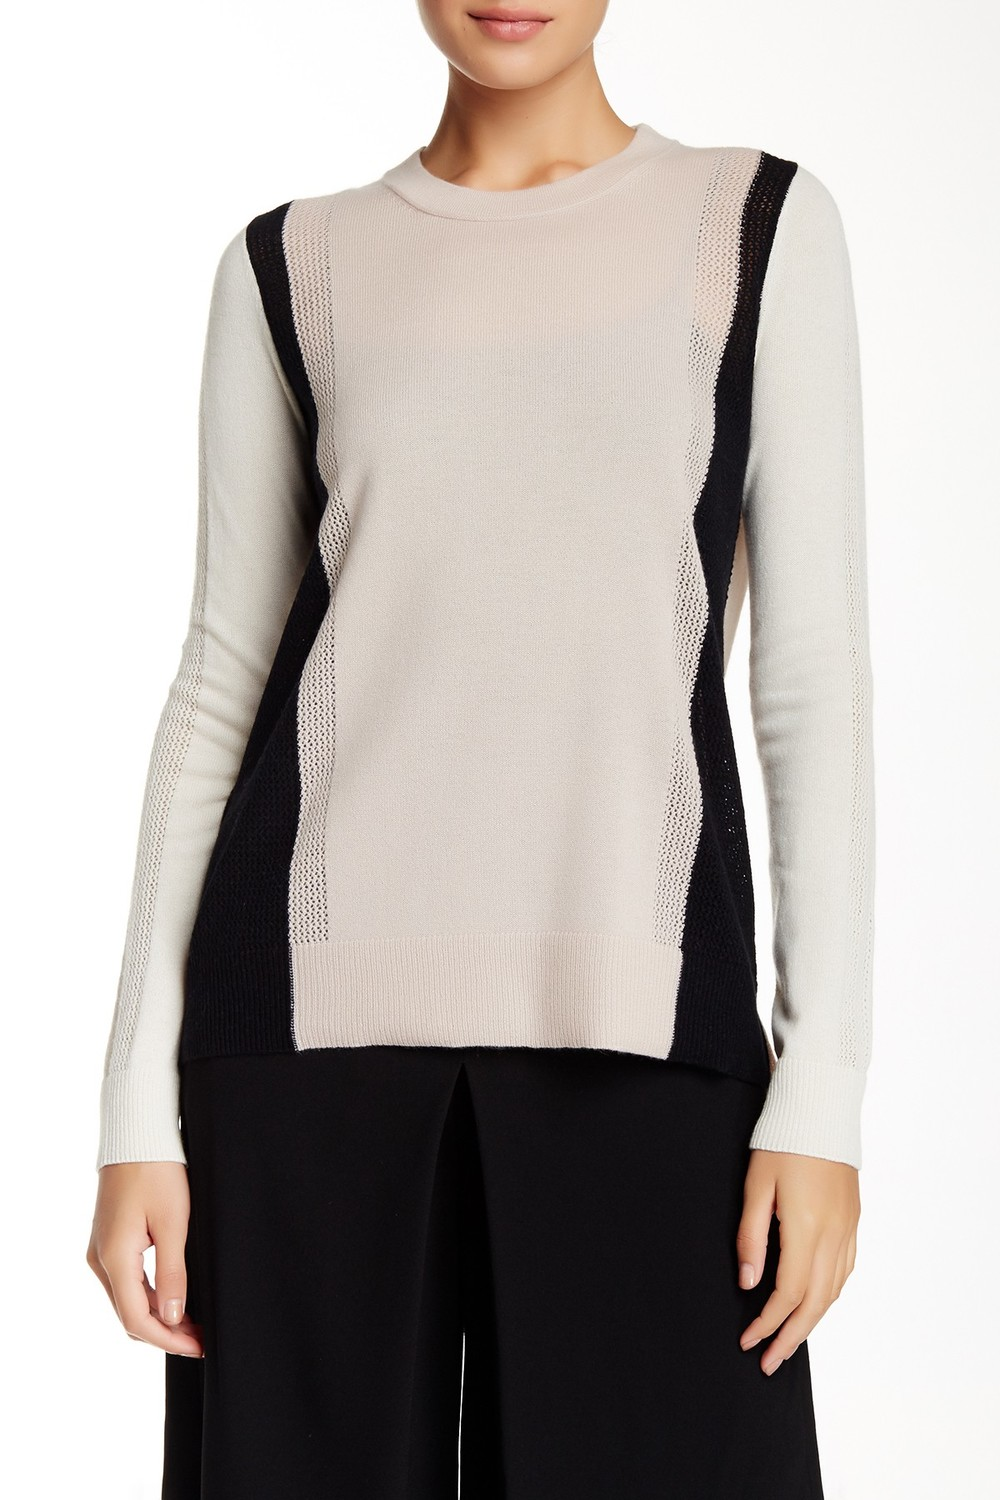 Vince Colorblock Long Sleeve Cashmere Sweater. Available in two color combos. Nordstrom Rack. Was: $325 Now: $134.